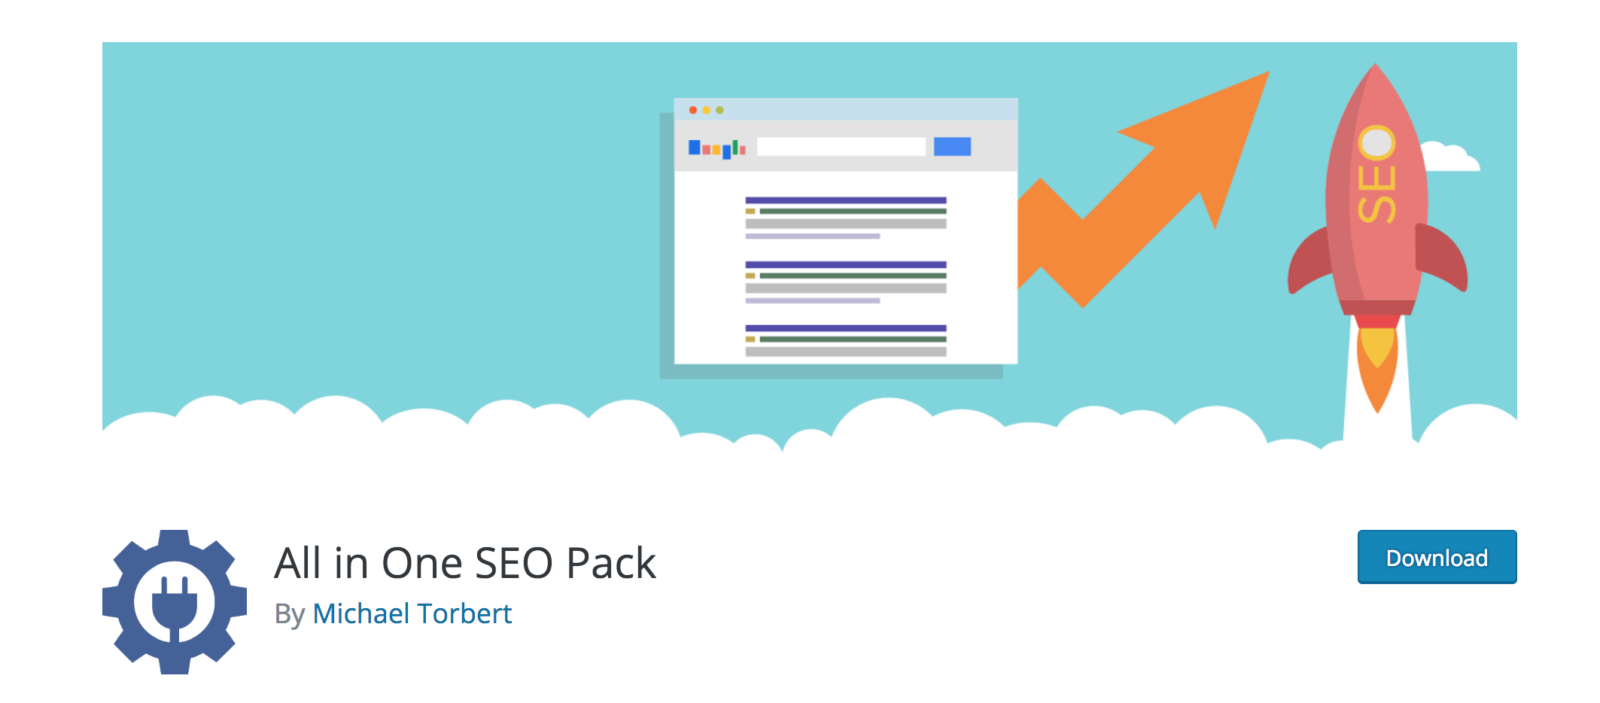 افزونه All in One SEO Pack